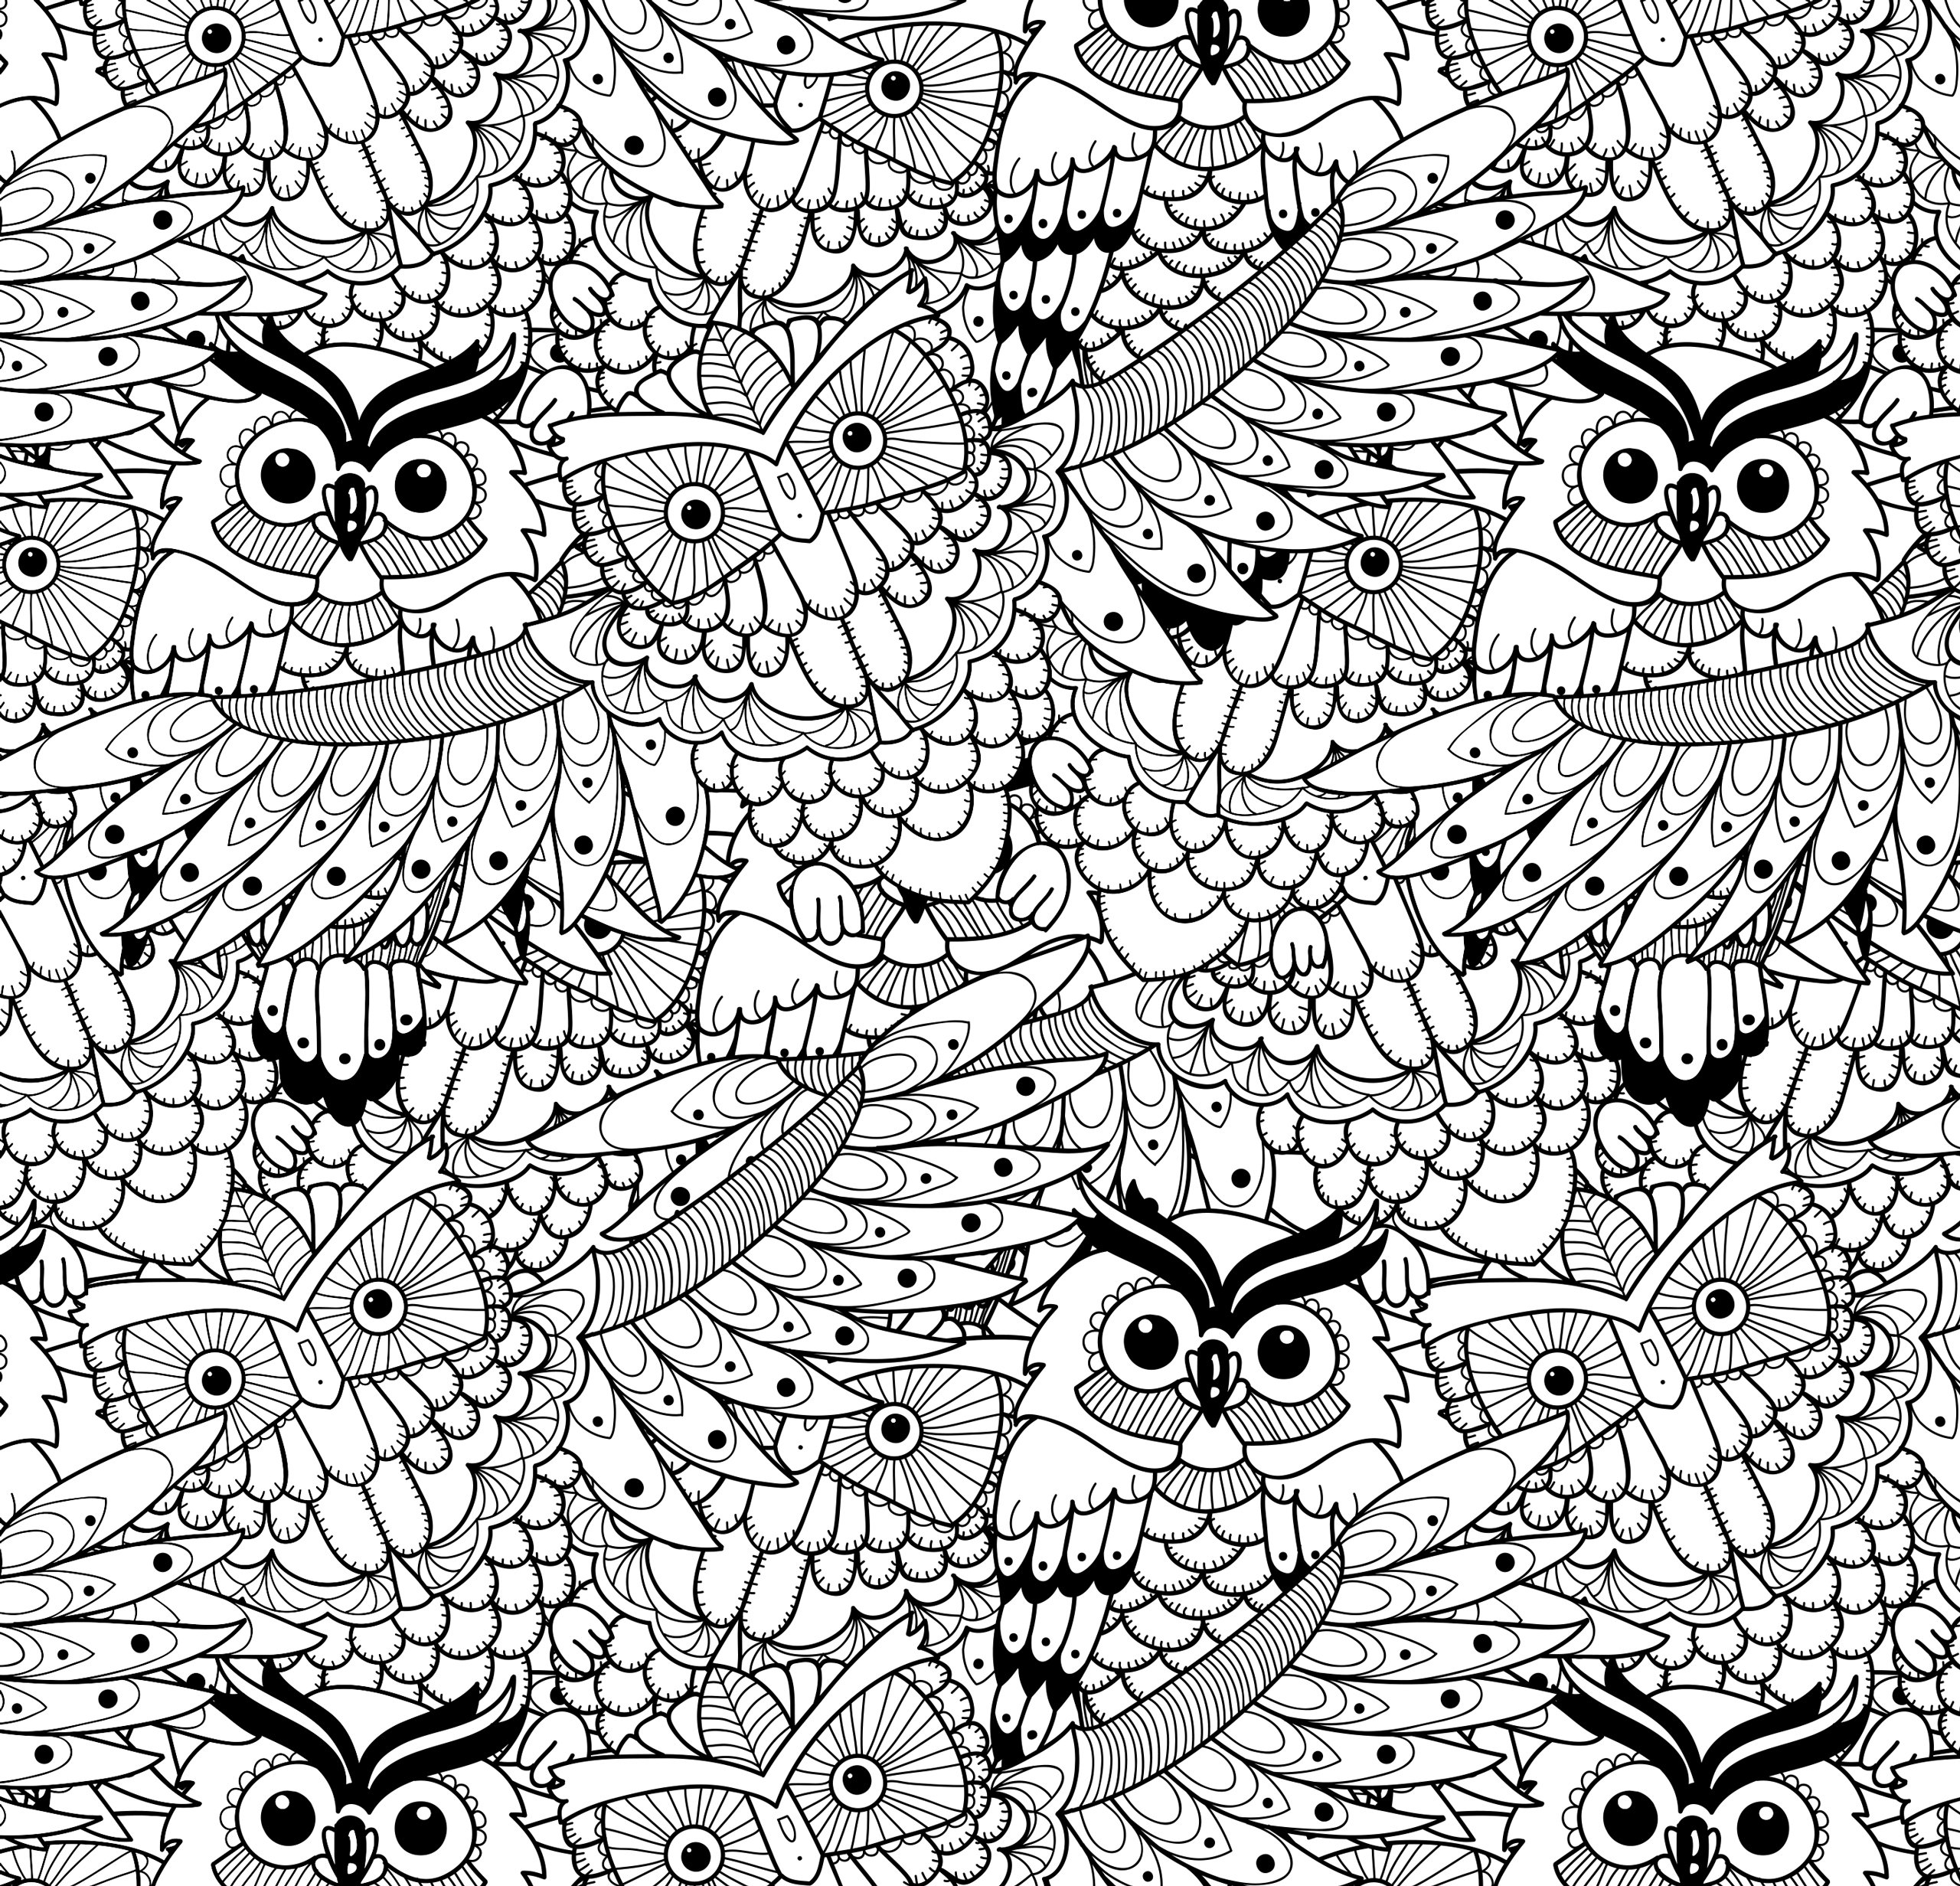 Amazon.com: Owl Town Adult Coloring Book (31 stress-relieving ...